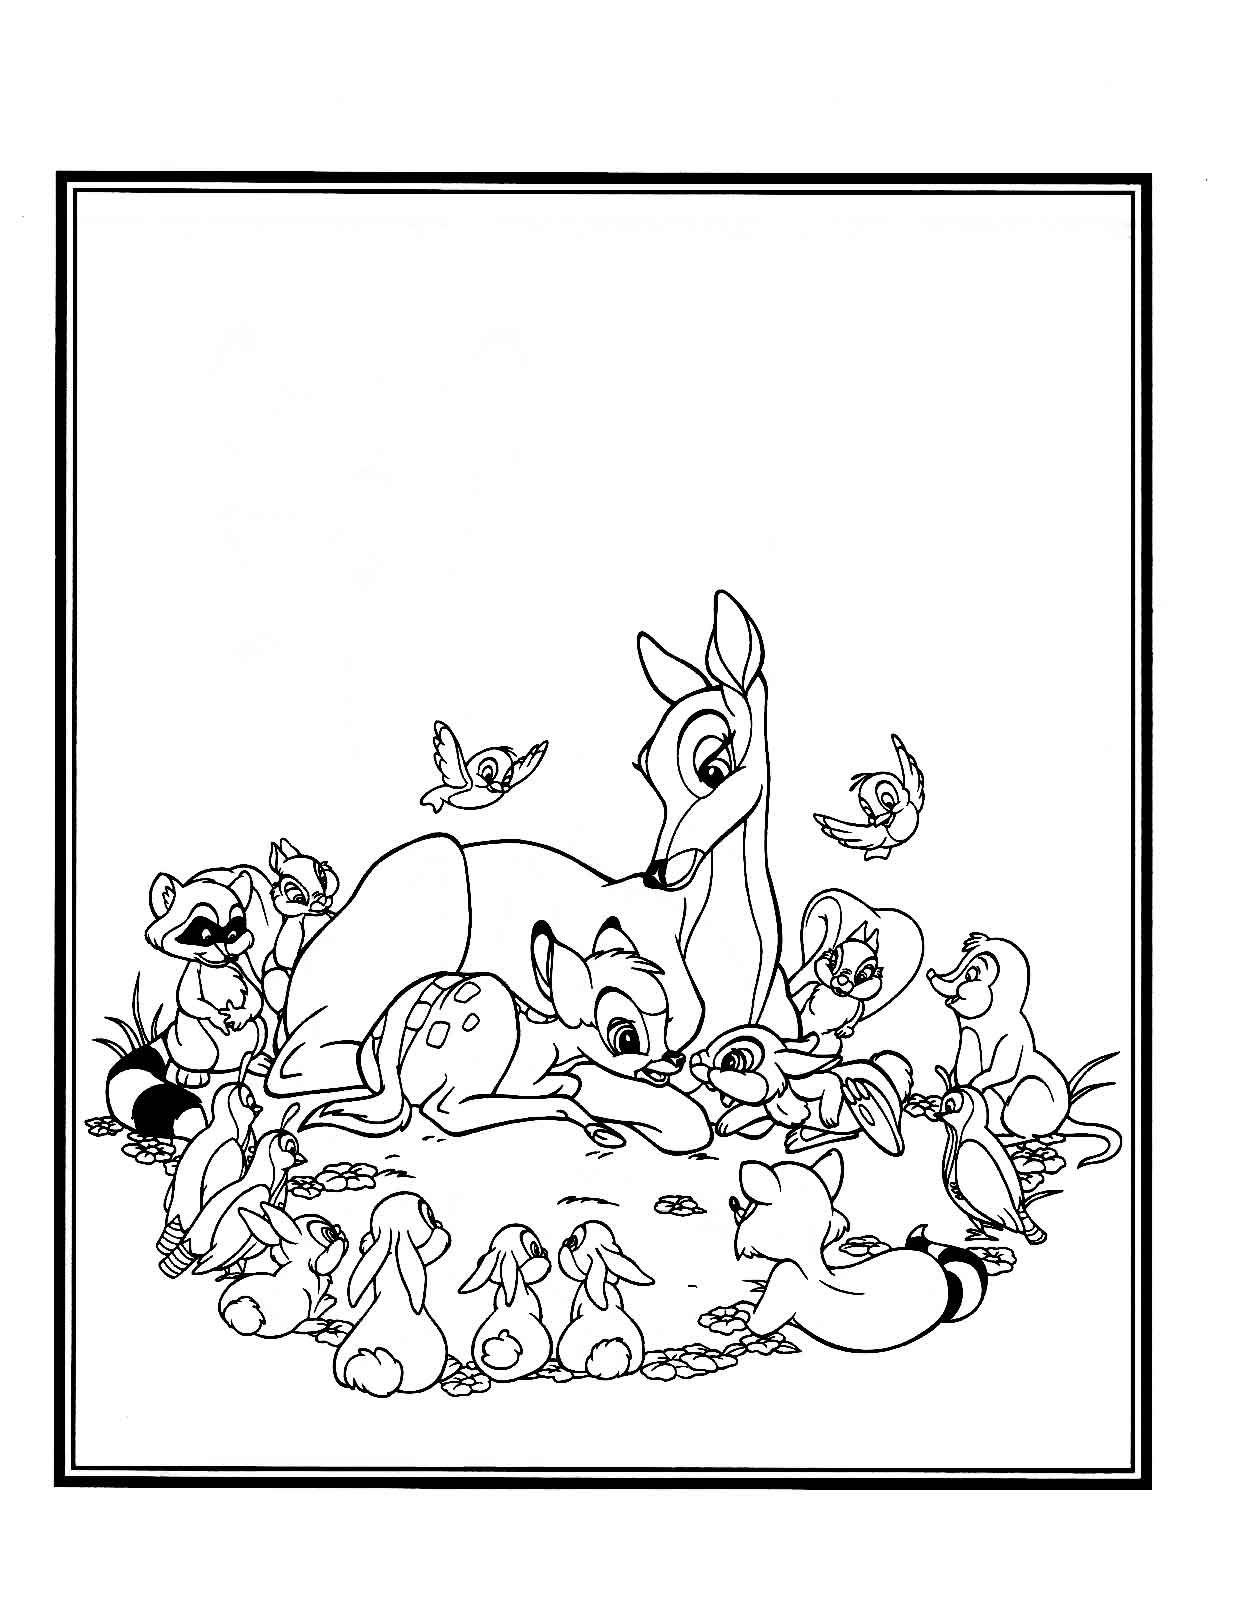 bambi coloring pages - Bing Images | Coloring-Disney 2 | Pinterest